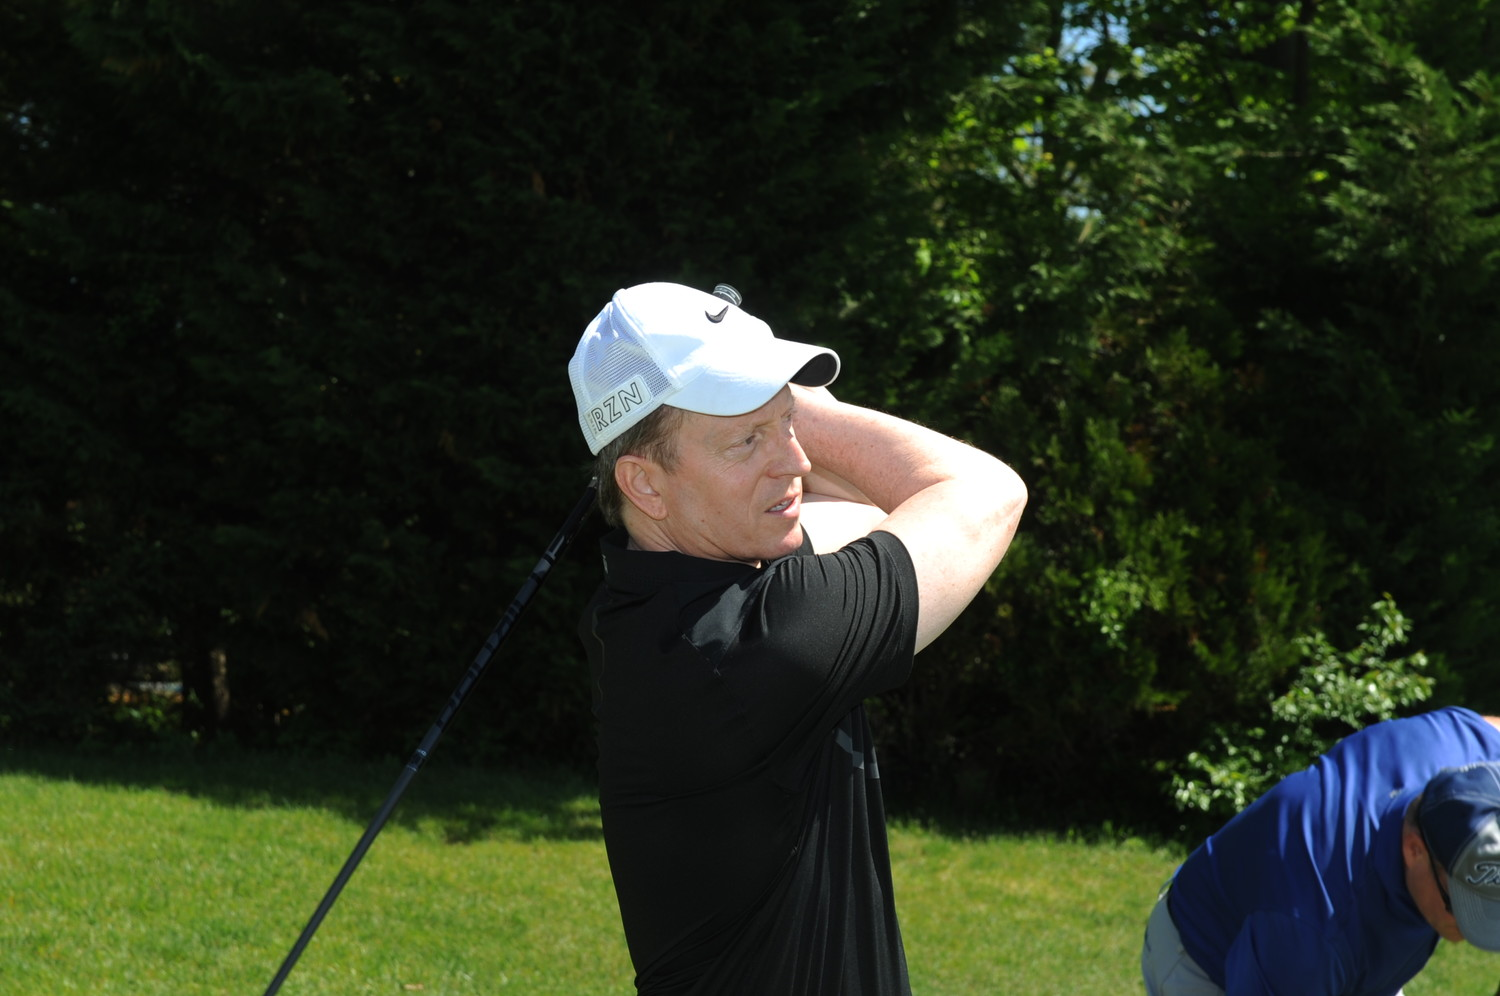 South Nassau board member Lowell Frey followed the flight of his shot.